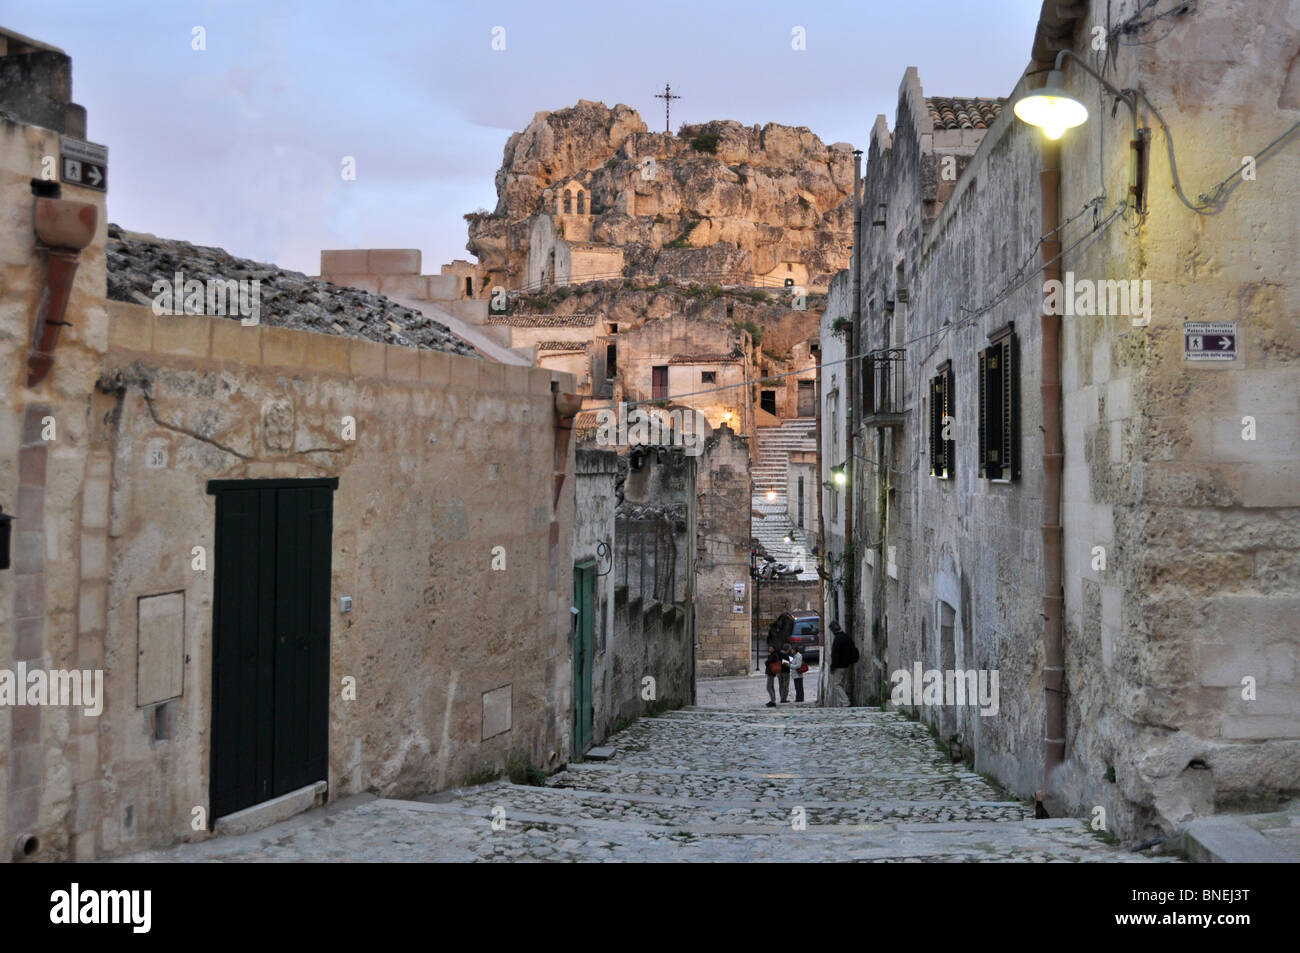 Sundown on a Characteristic stairway in Matera Sassi Basilicata Italy - Stock Image